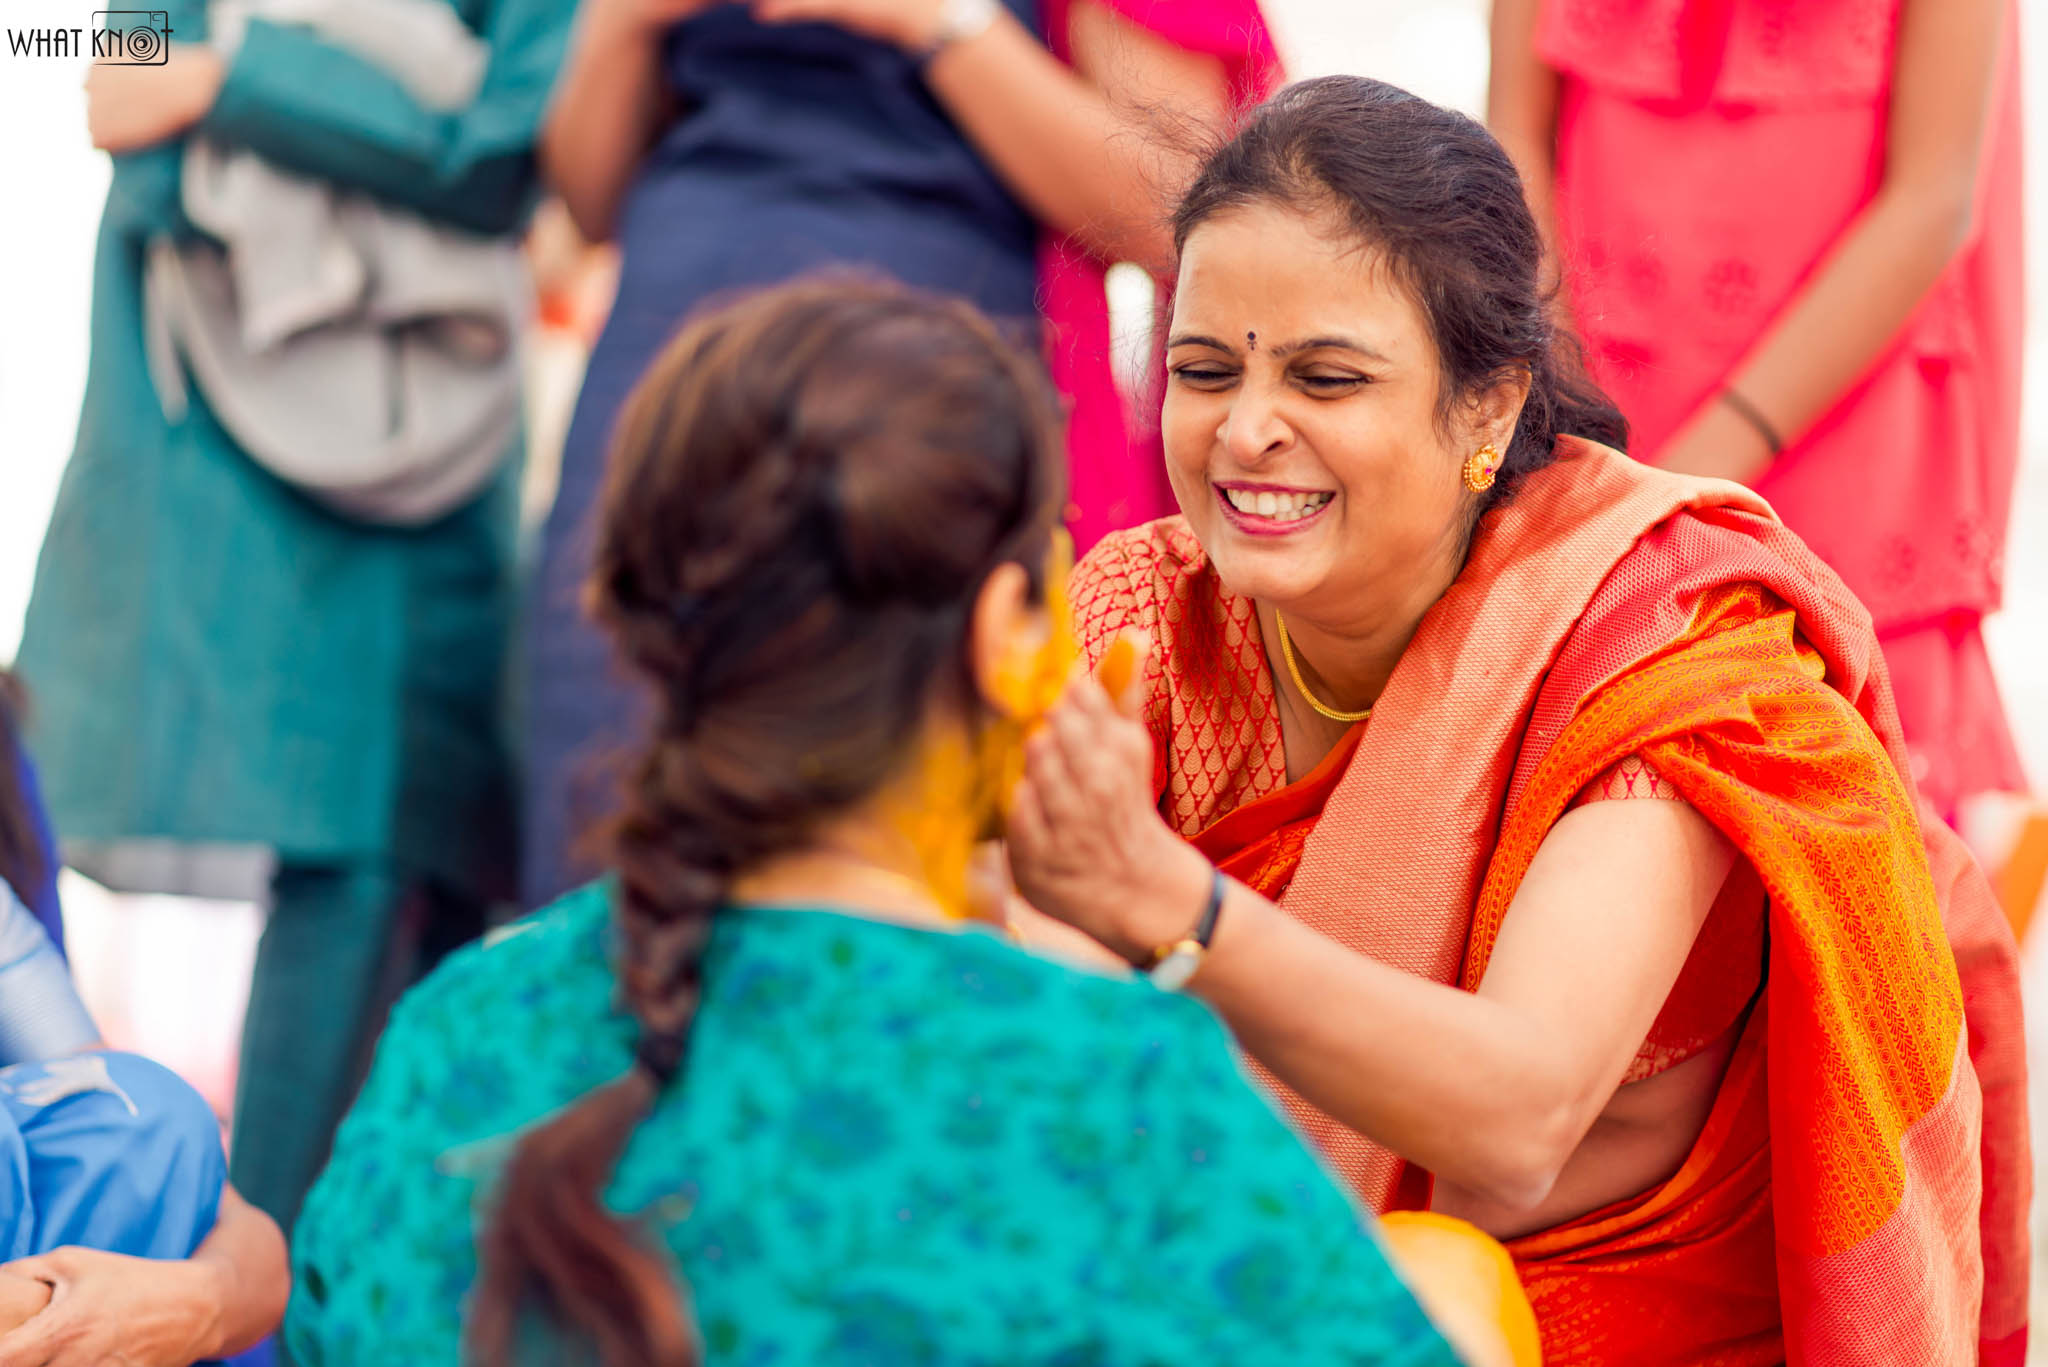 Candid-Wedding-Photography-WhatKnot-Marathi-12